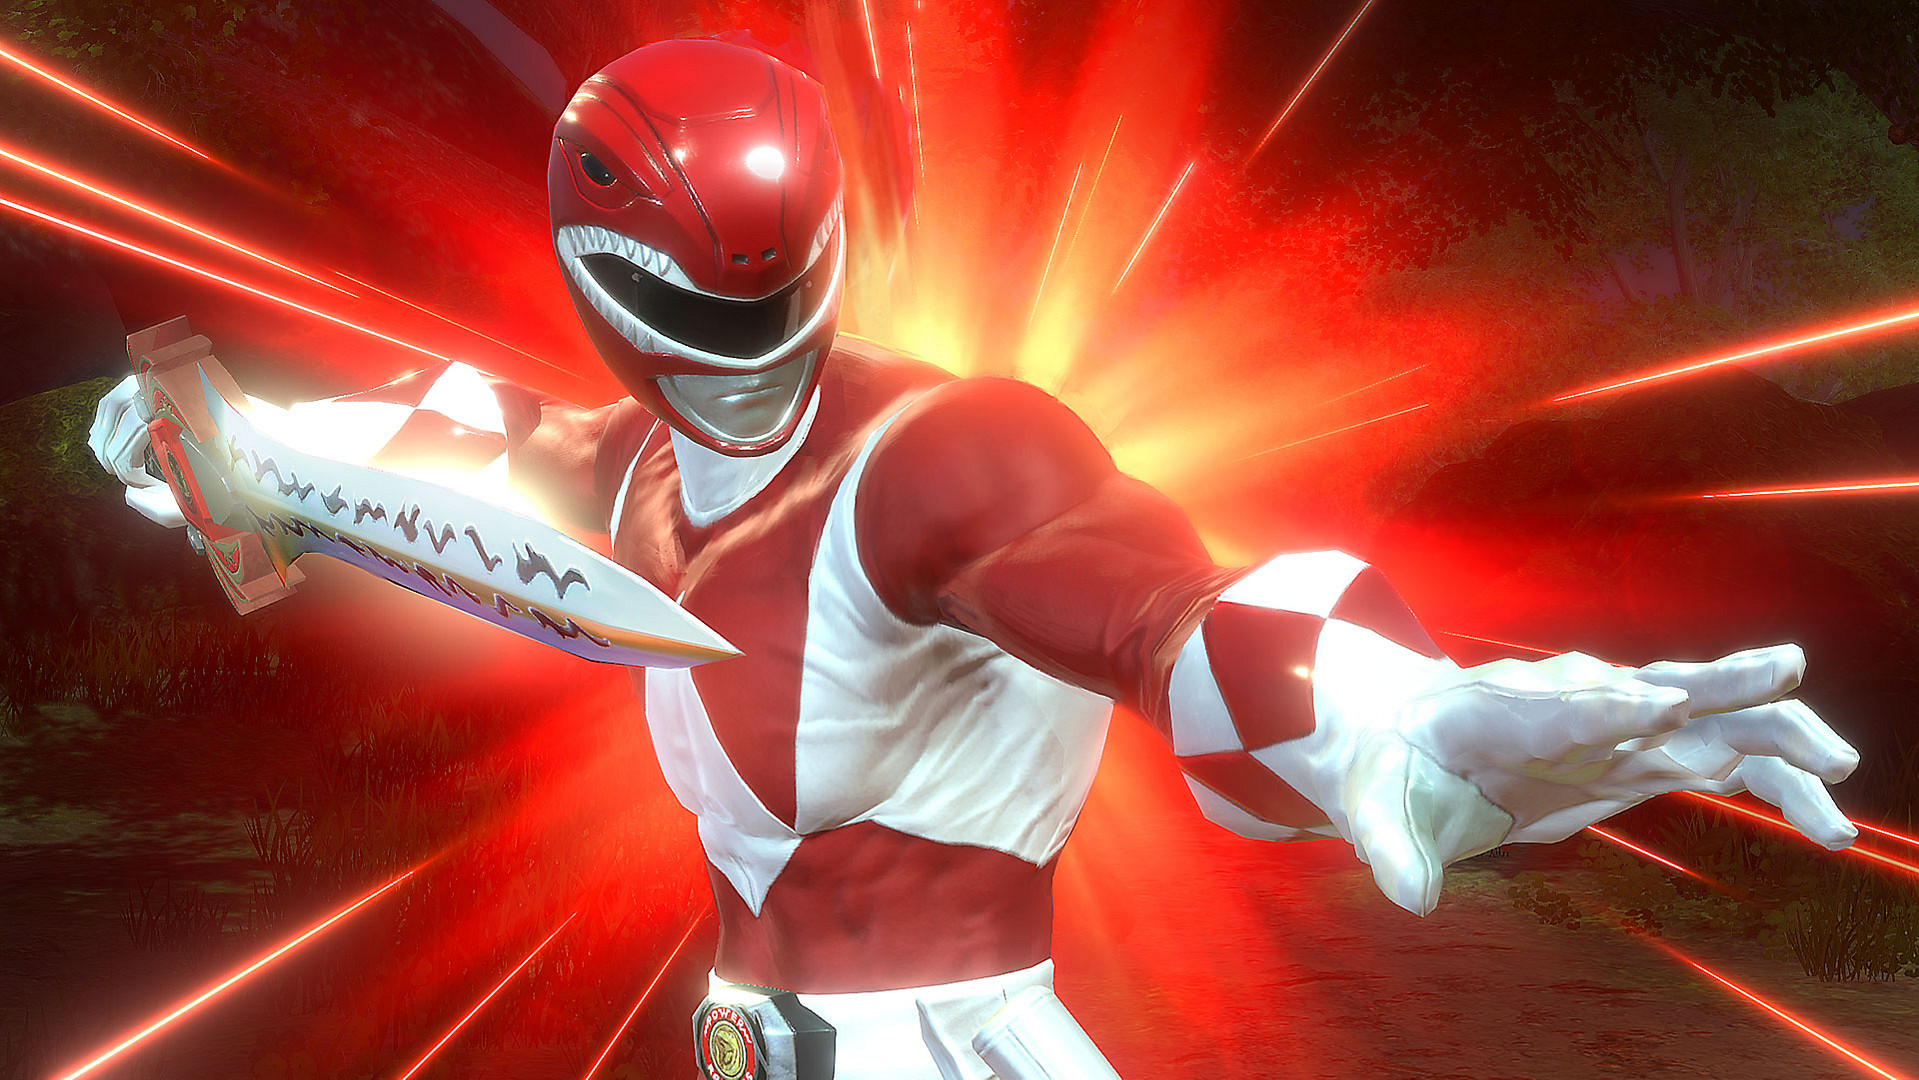 New Update Makes Power Rangers More Like A Real Fighting Game